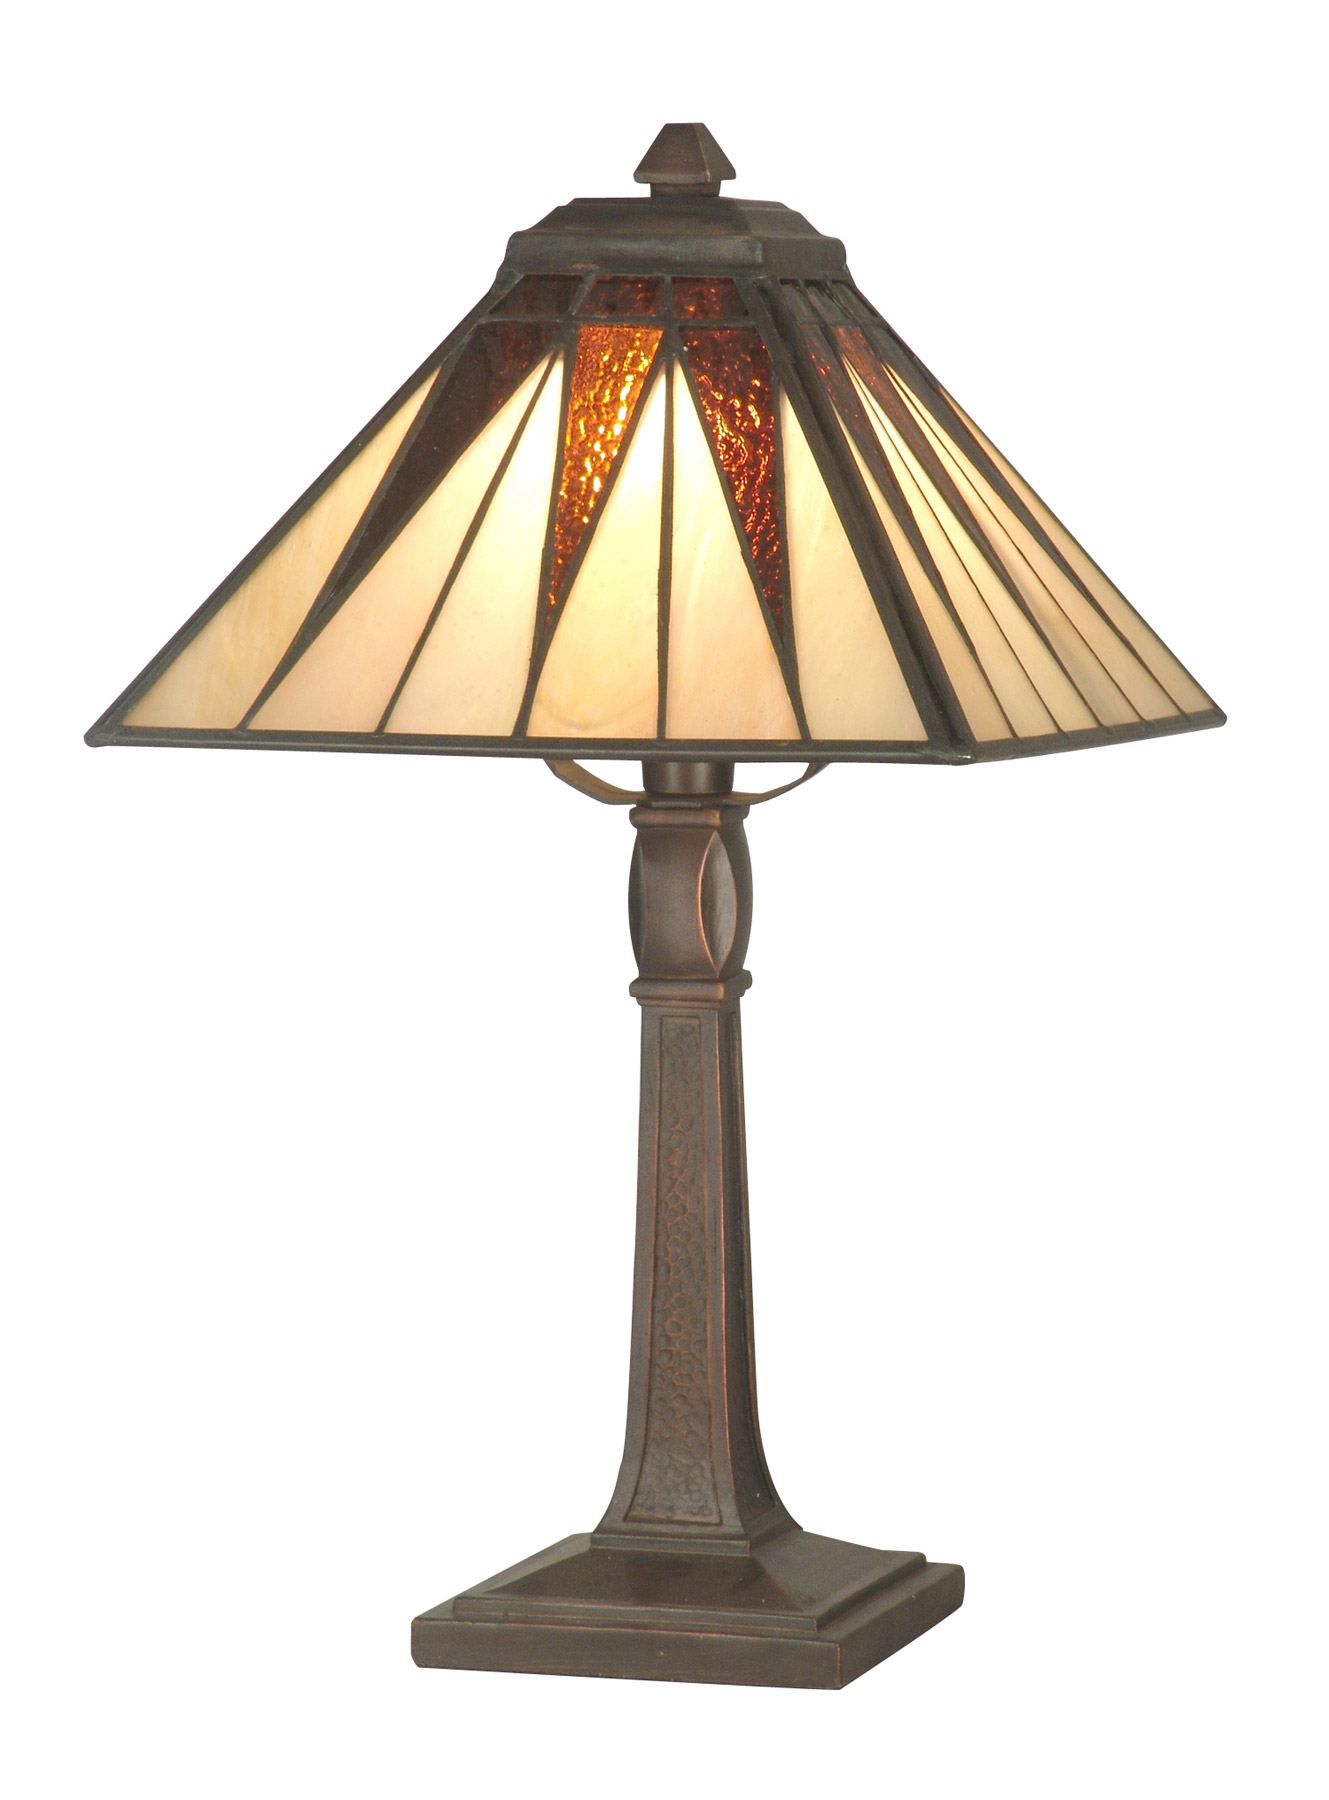 home lamps table lamps accent lamps dale tiffany ta70680. Black Bedroom Furniture Sets. Home Design Ideas